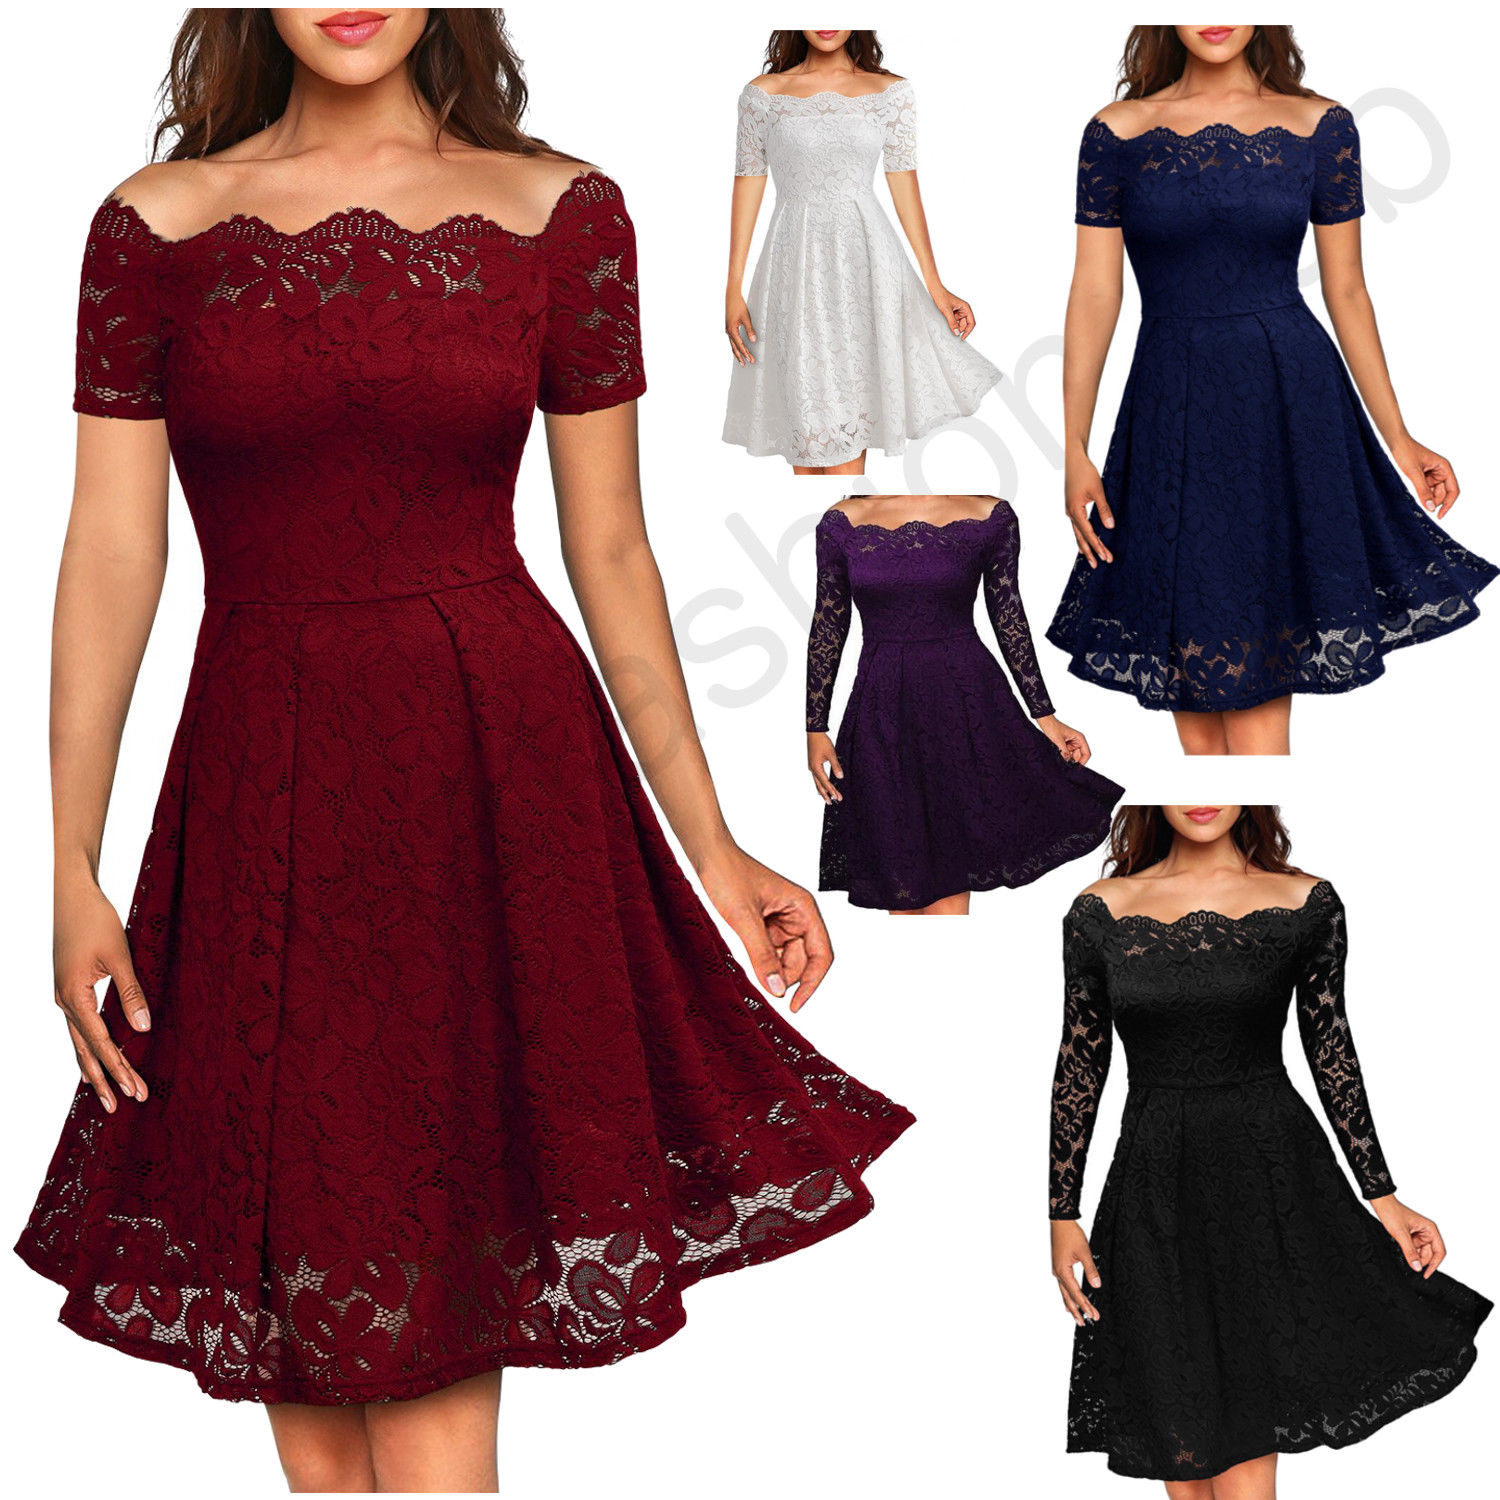 Awesome Women's Vintage Lace Boat Neck Formal Wedding